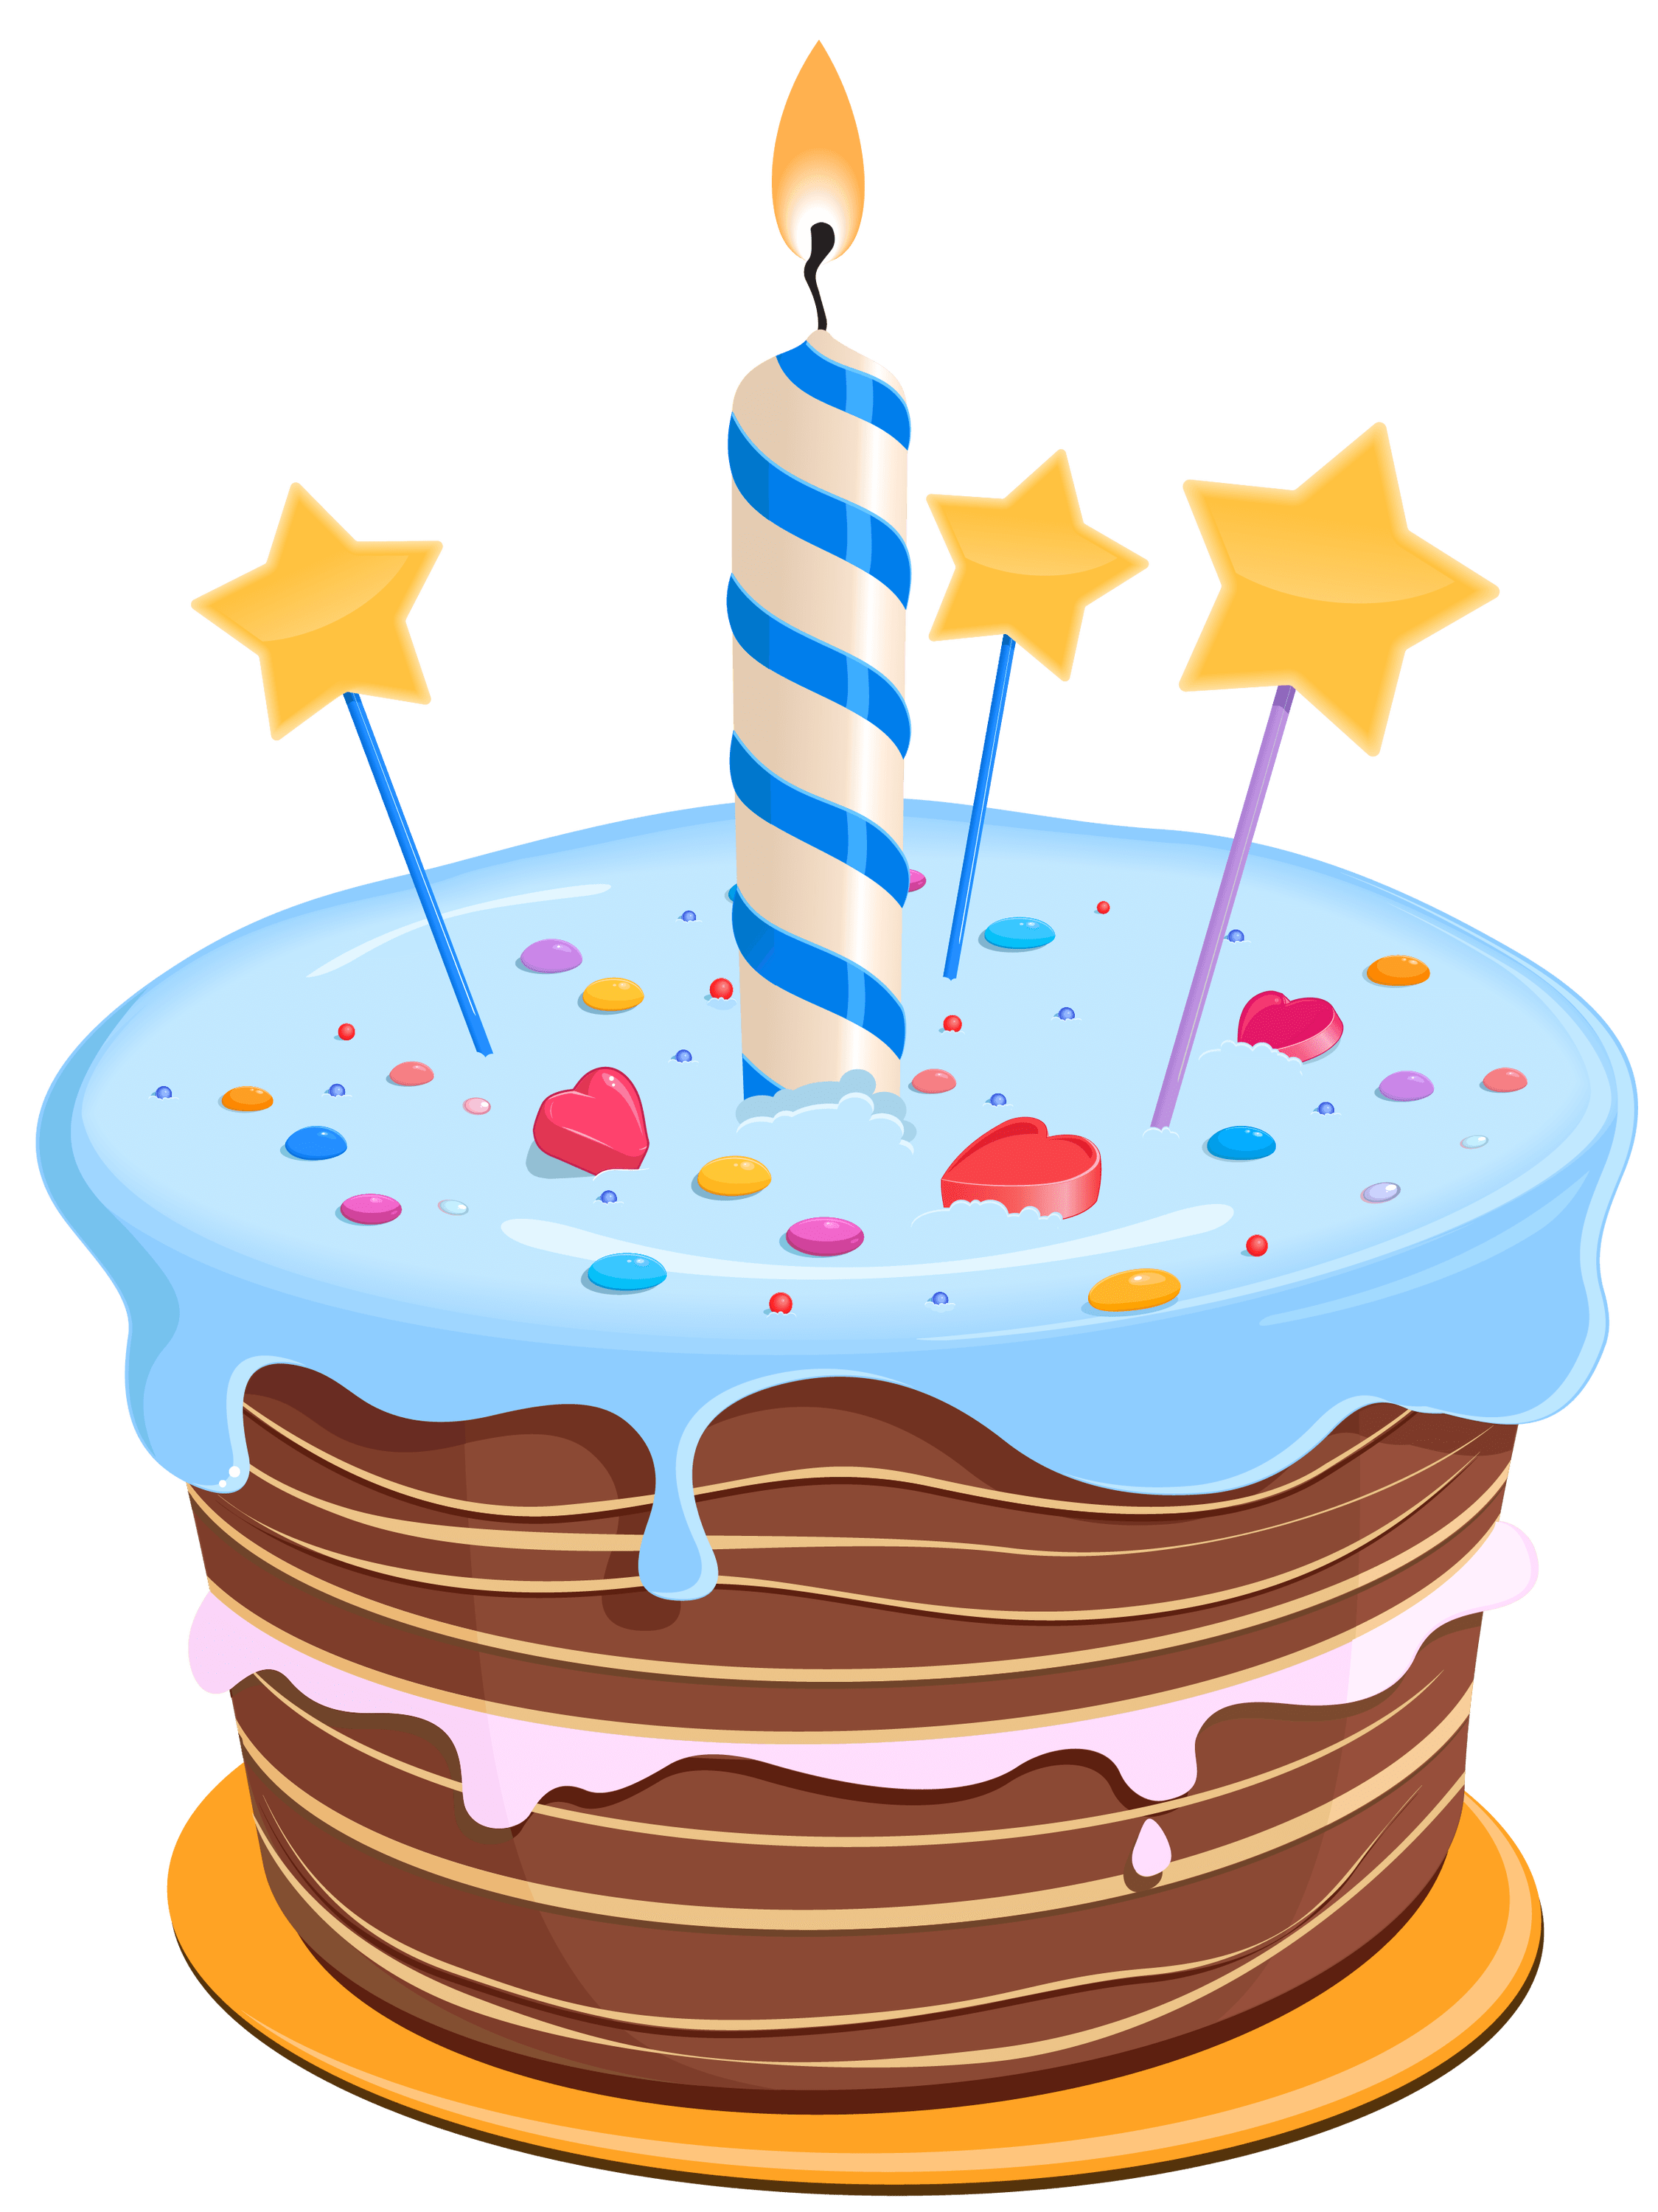 Shopkins birthday cake clipart clipart Bday Cake Drawing at GetDrawings.com | Free for personal use Bday ... clipart